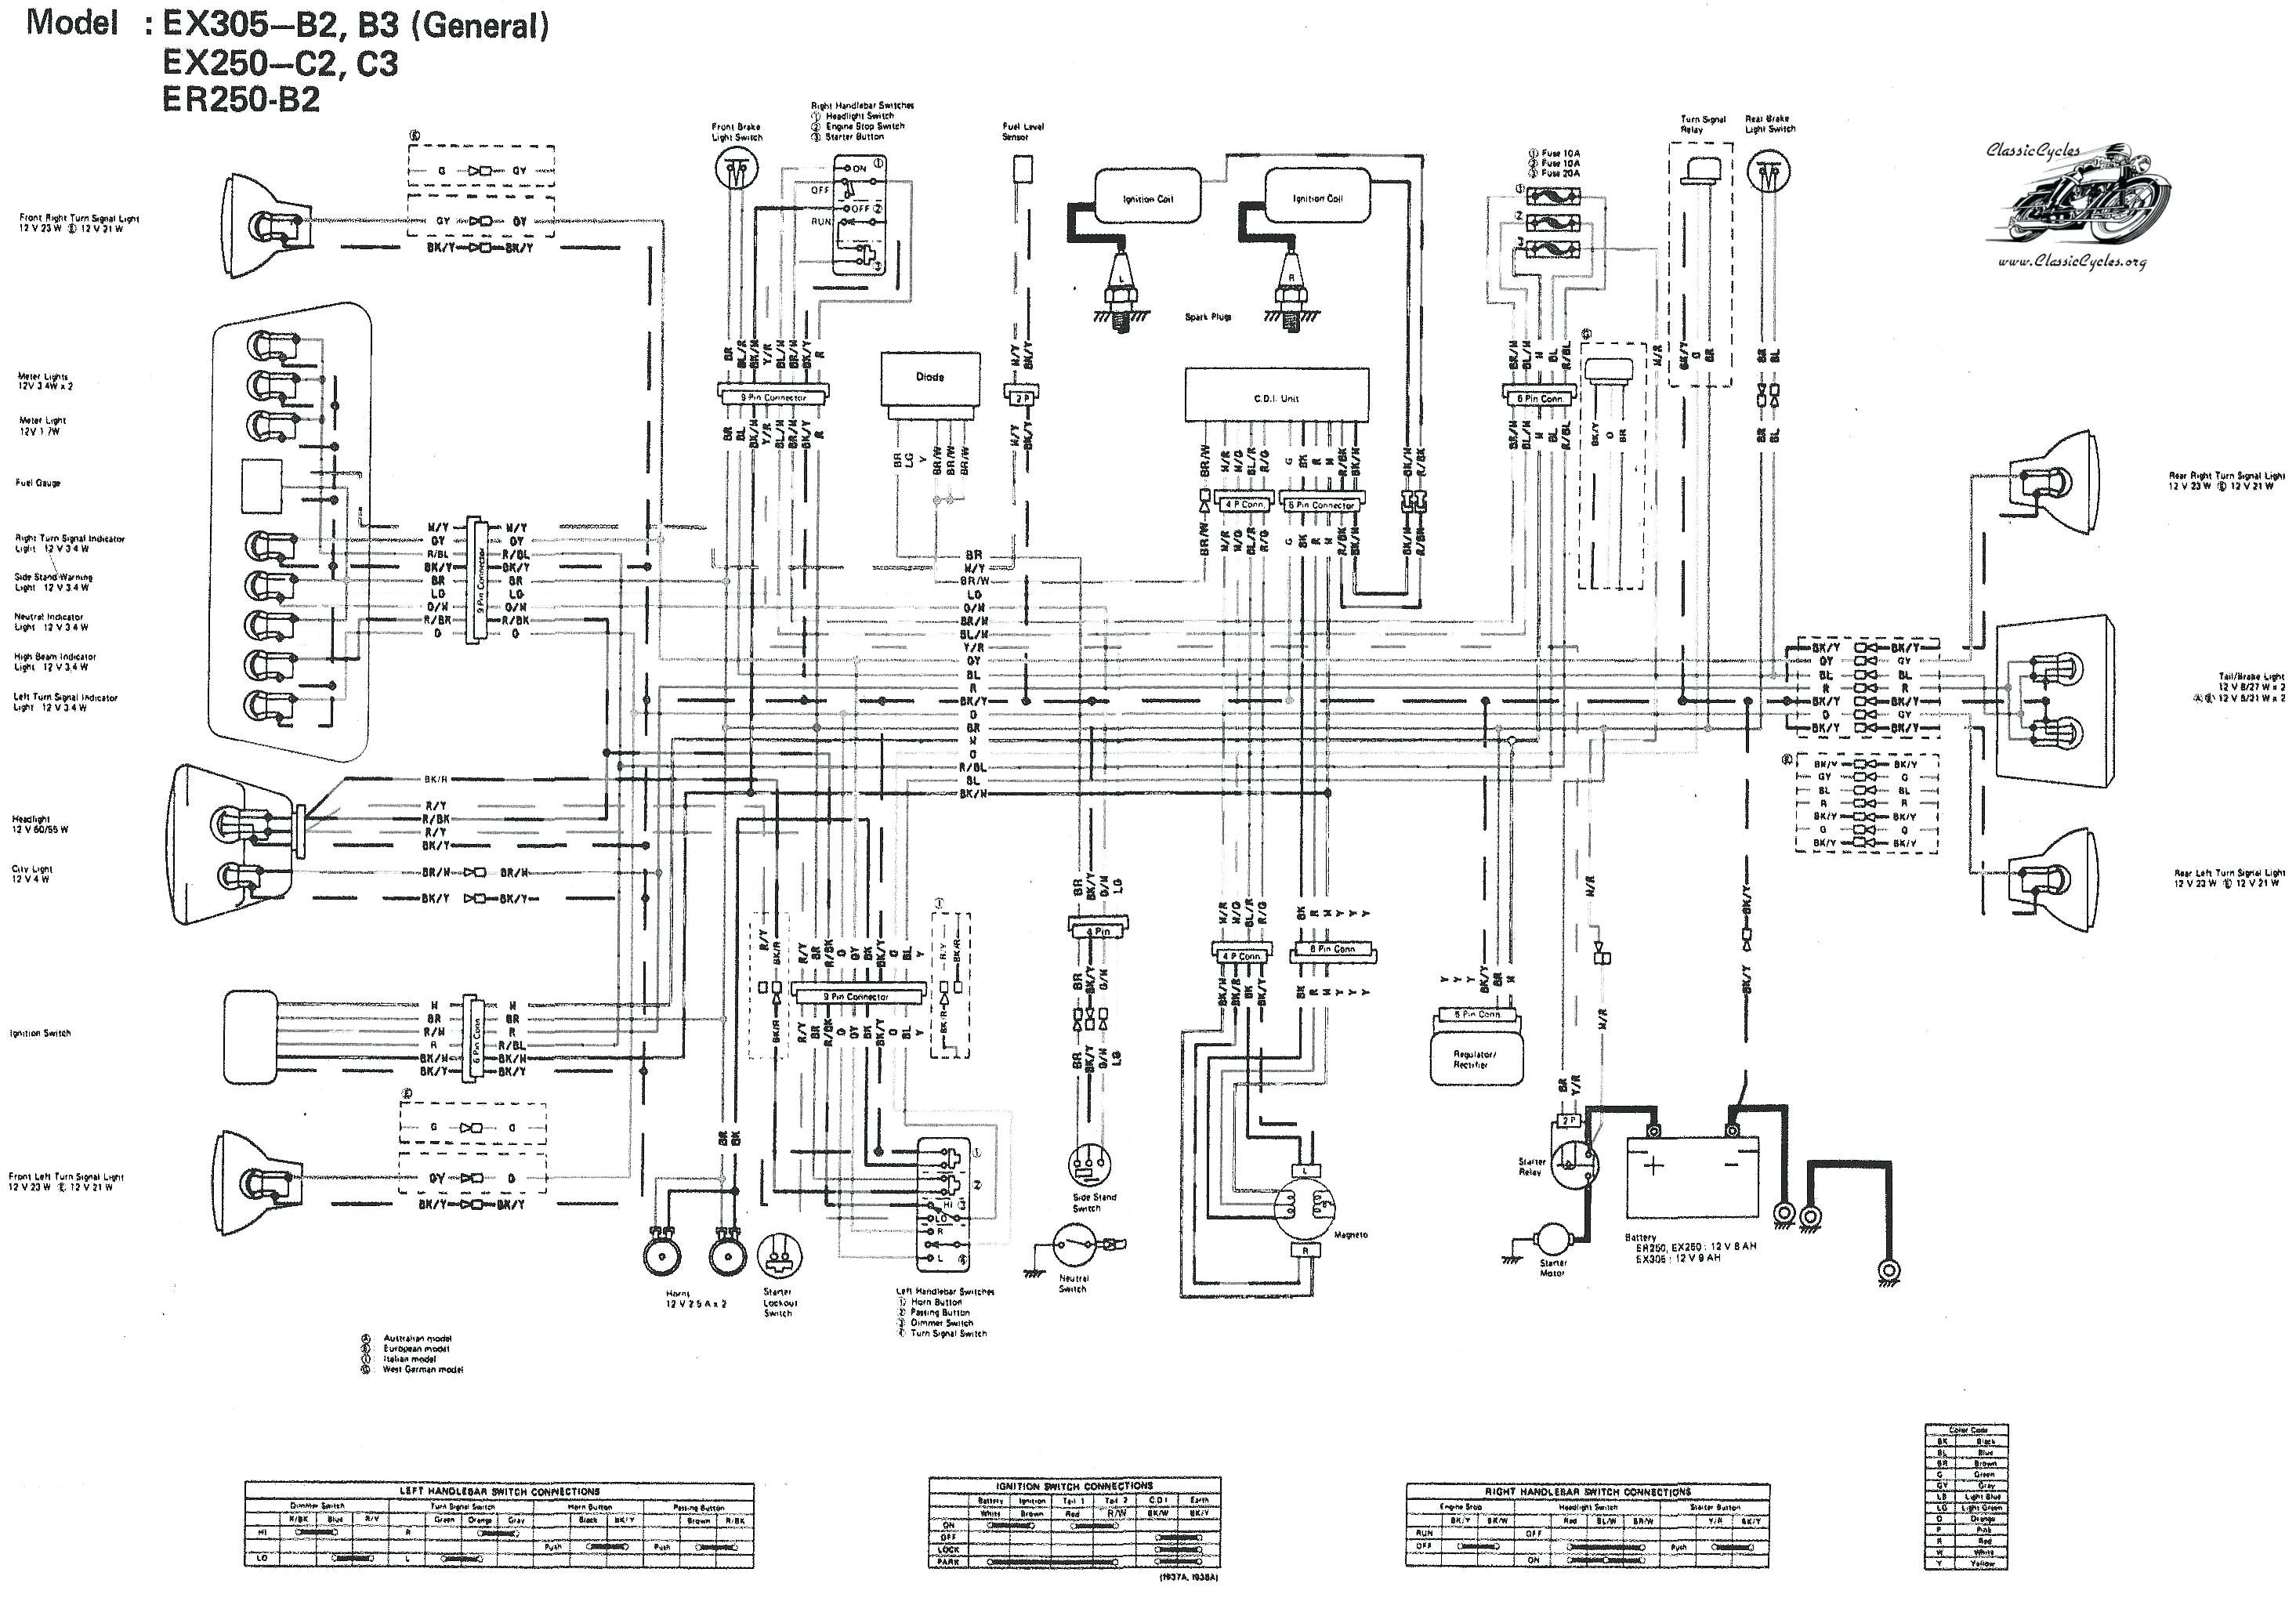 renault master 2 wiring diagram renault master engine diagram my wiring diagram renault master 3 wiring diagram